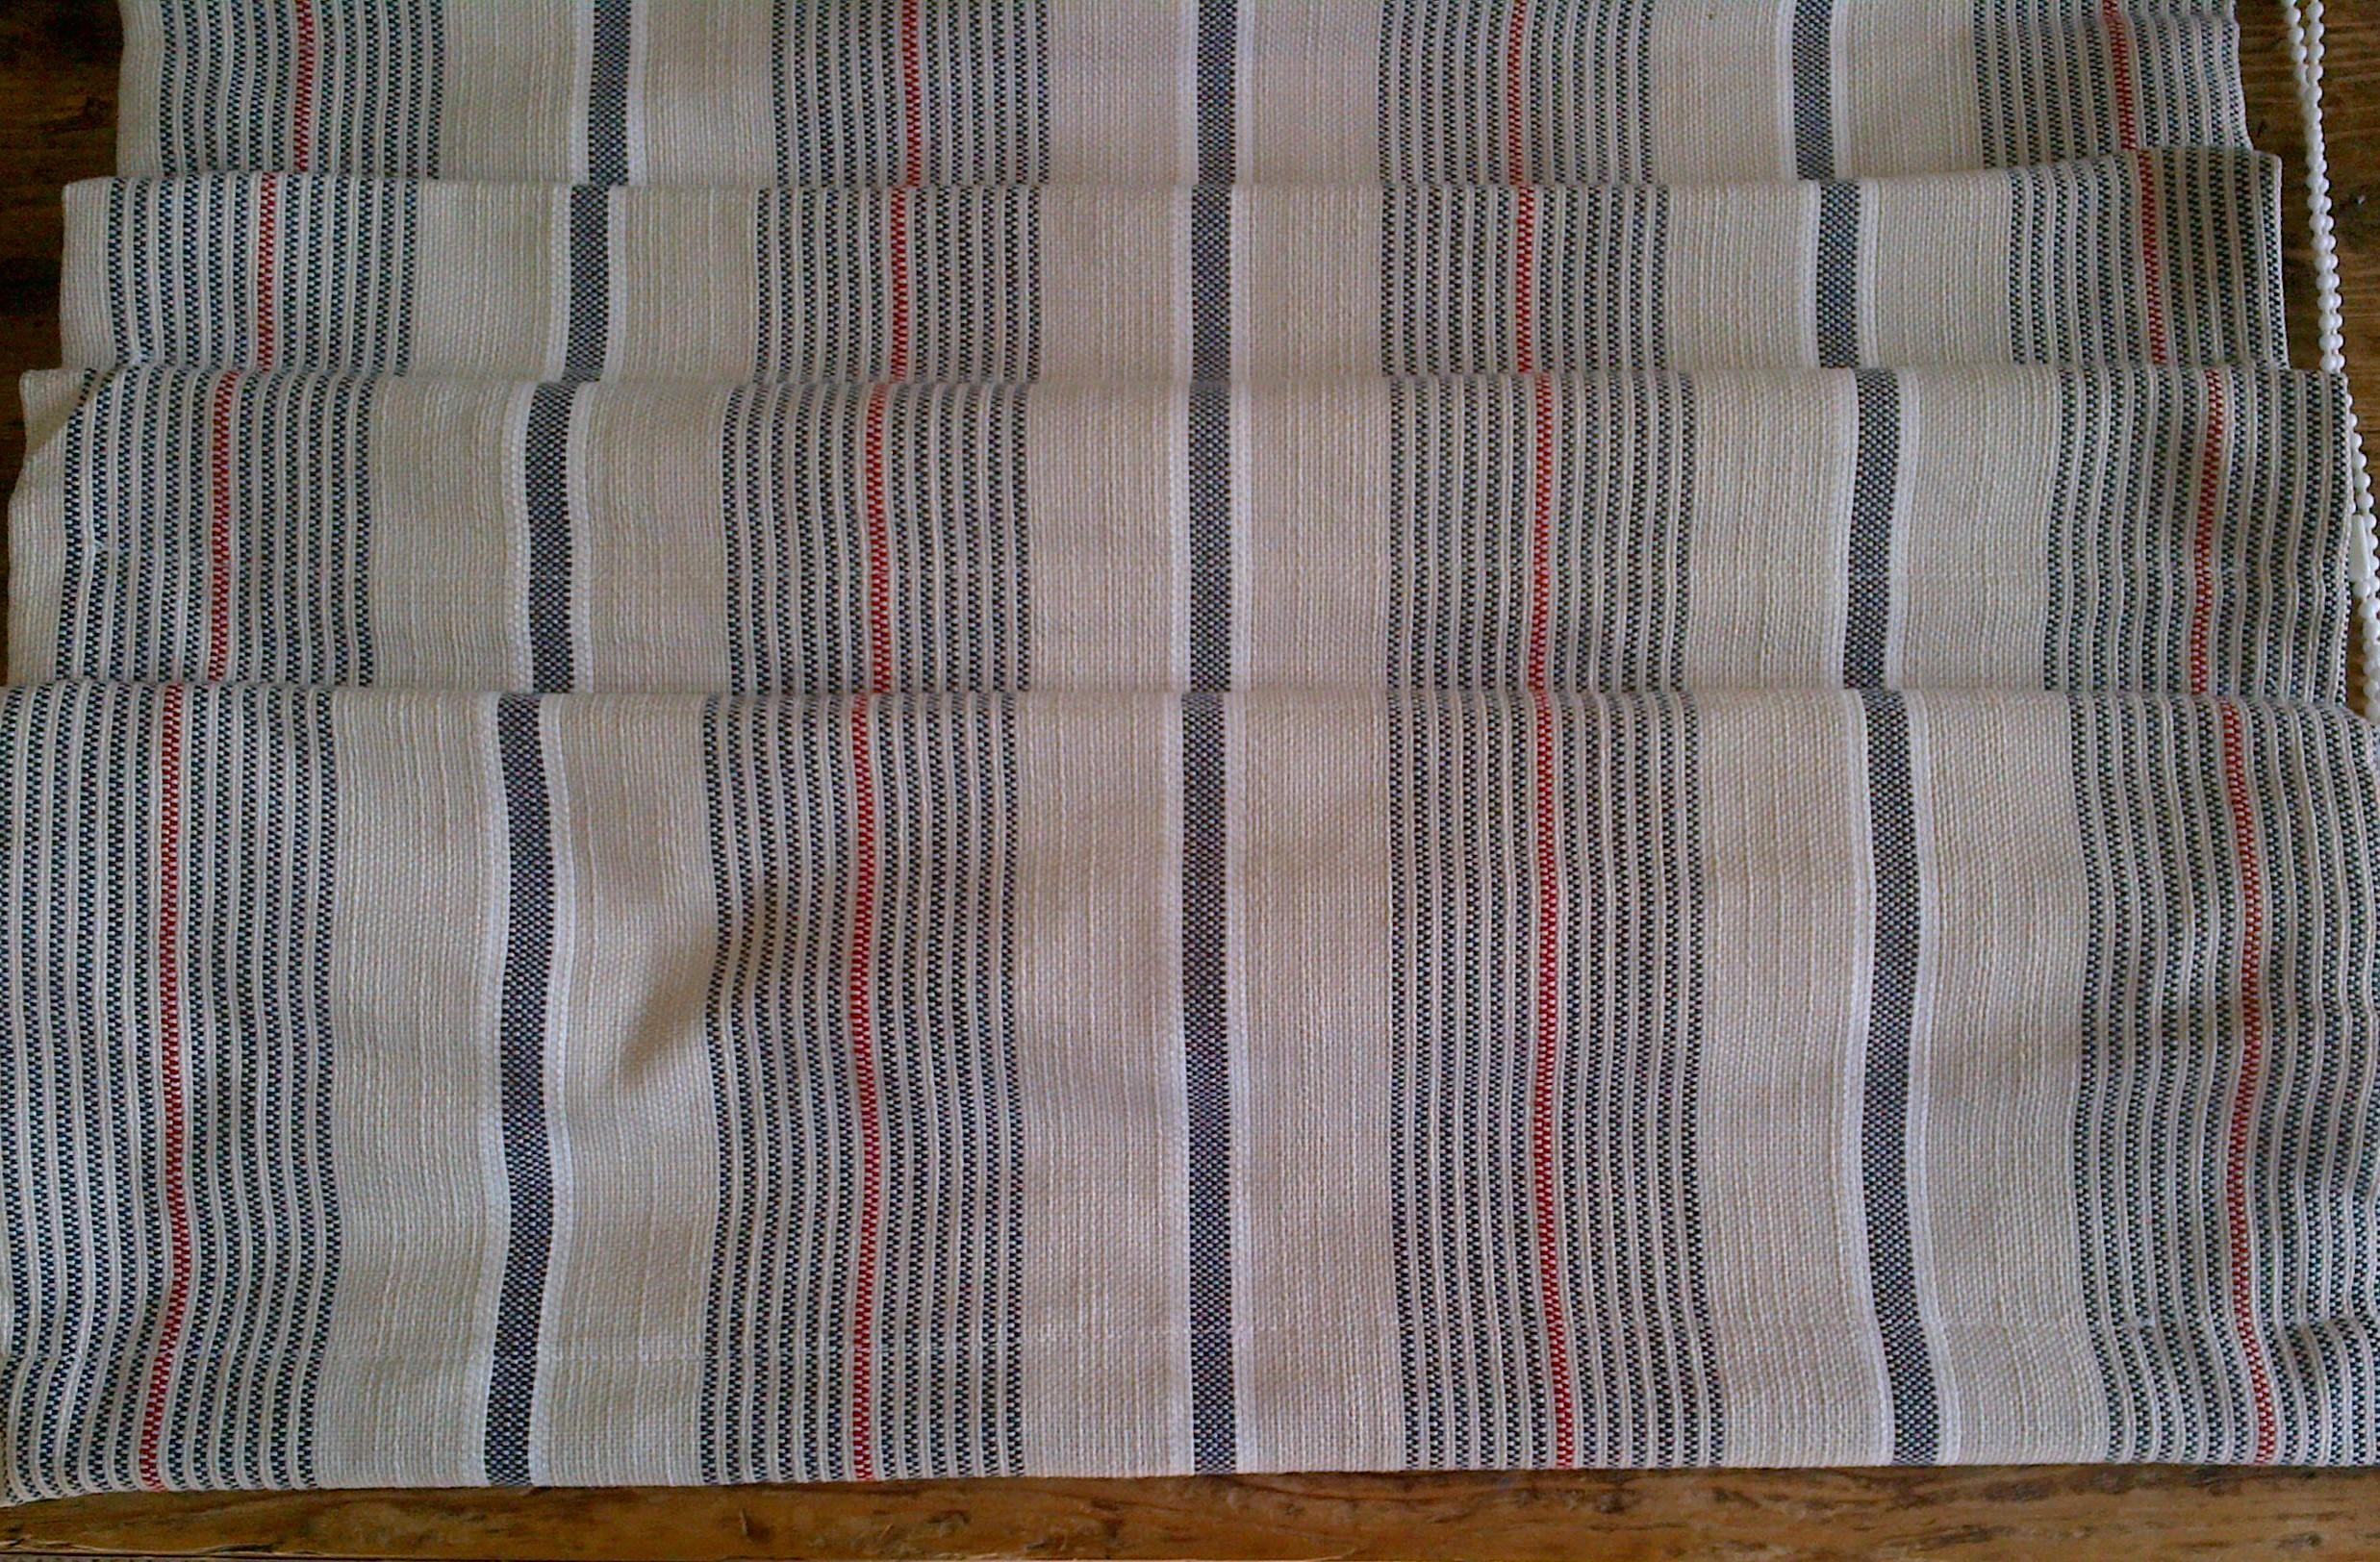 NEXT Nautical Striped Roman Blind - 120 x 120cm NEW